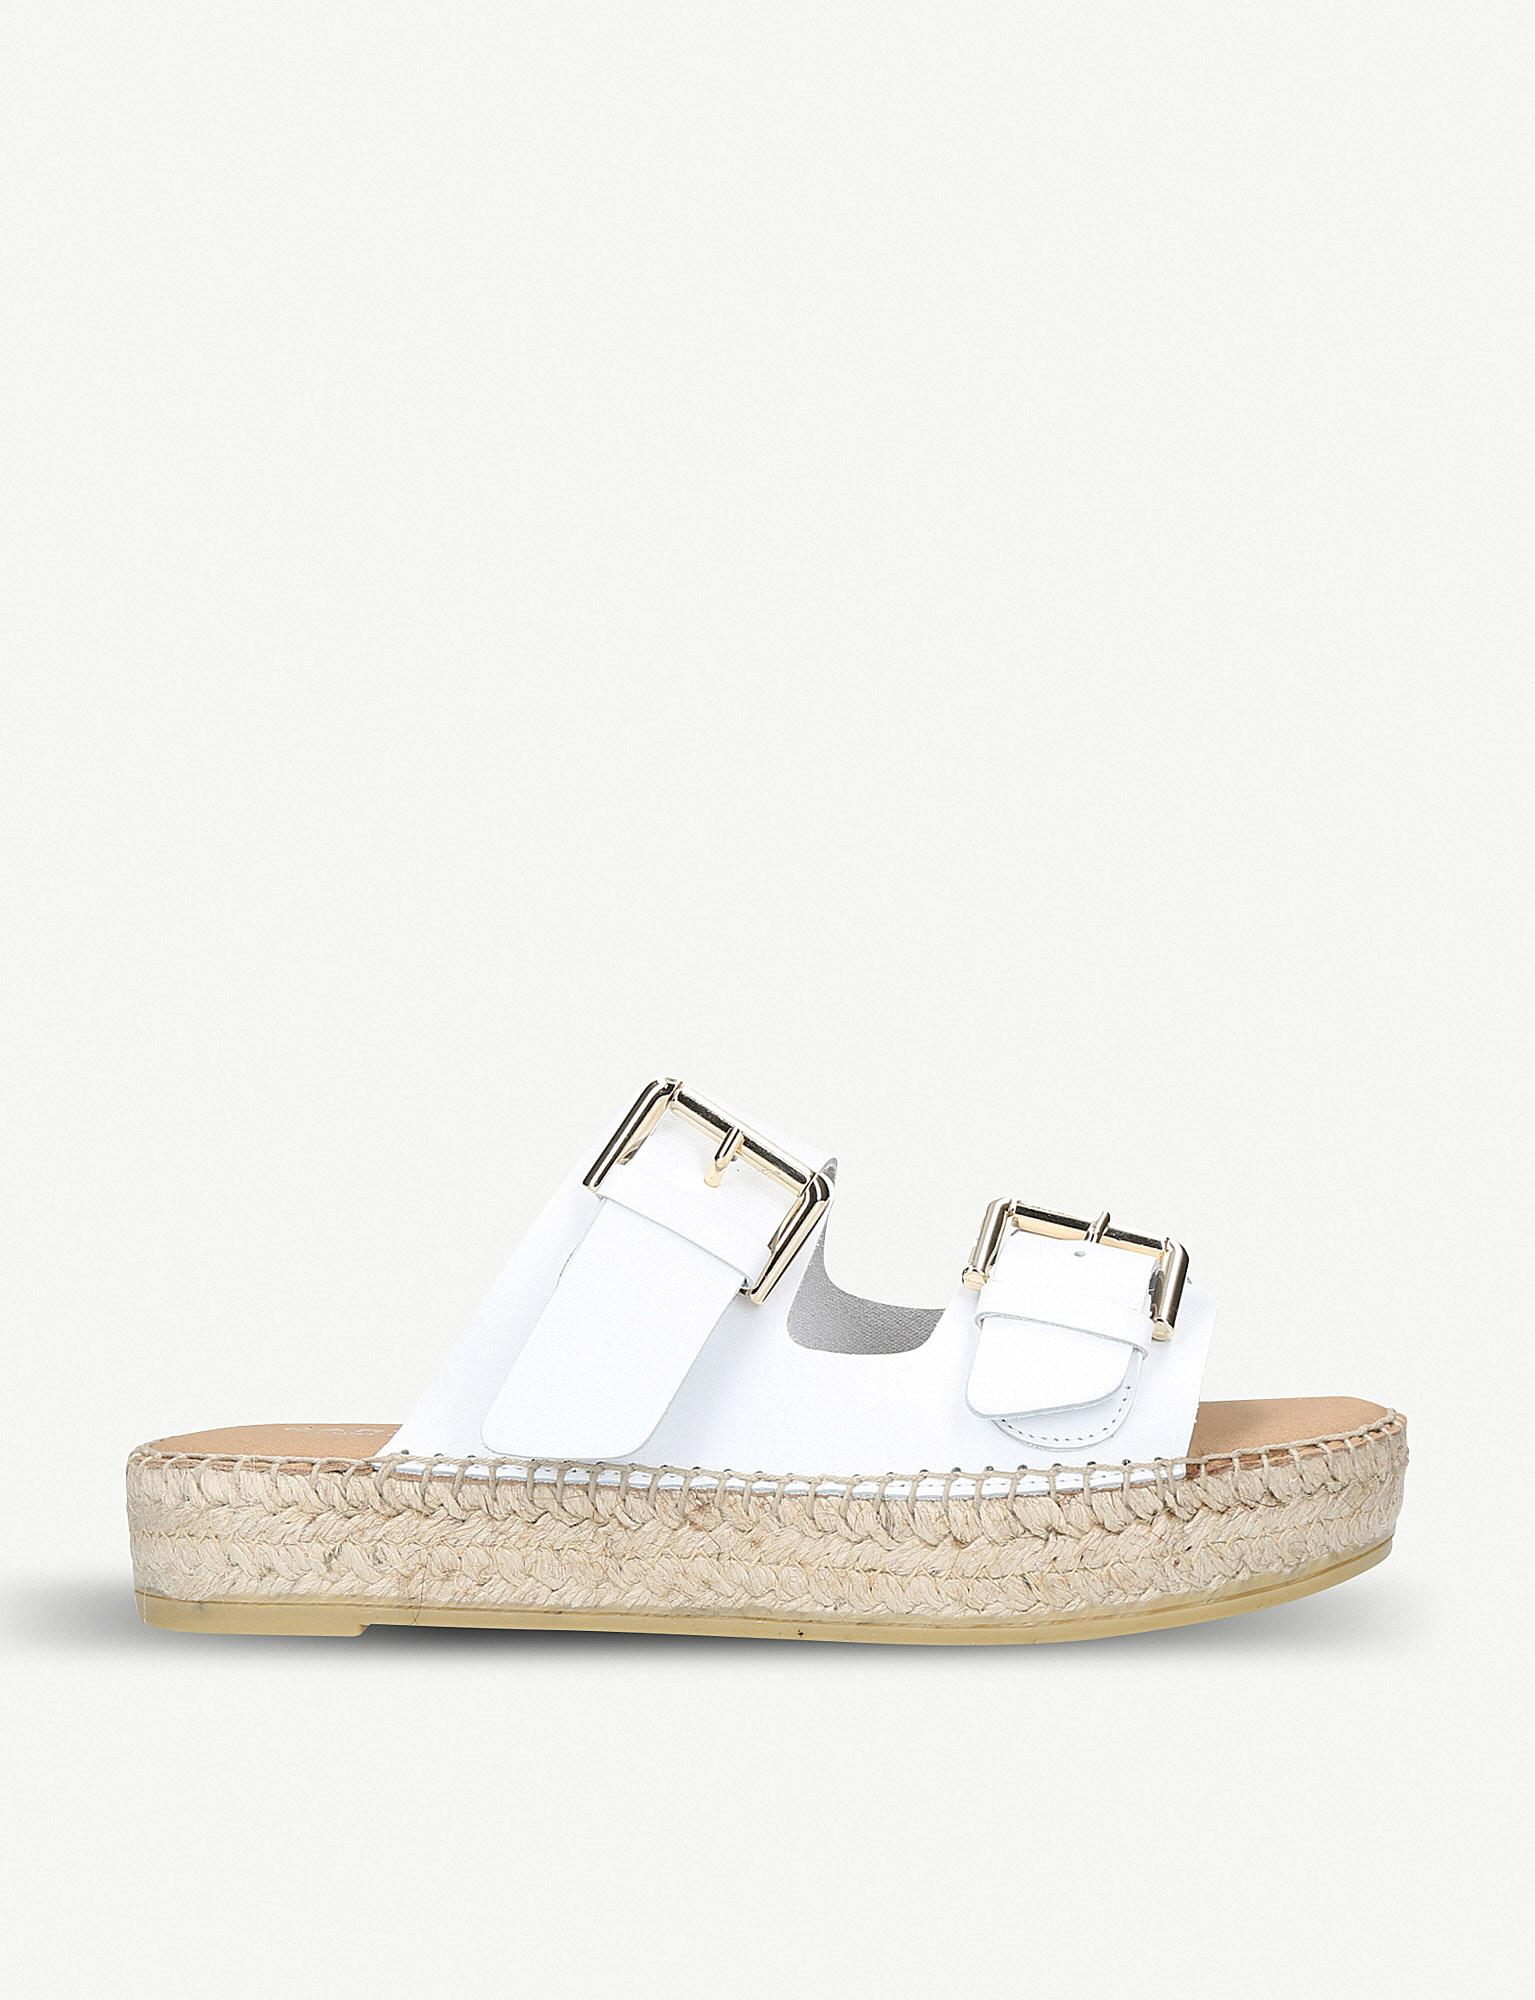 cca3018f35edea Carvela Kurt Geiger Klever Leather Flatform Espadrille Sandals in ...